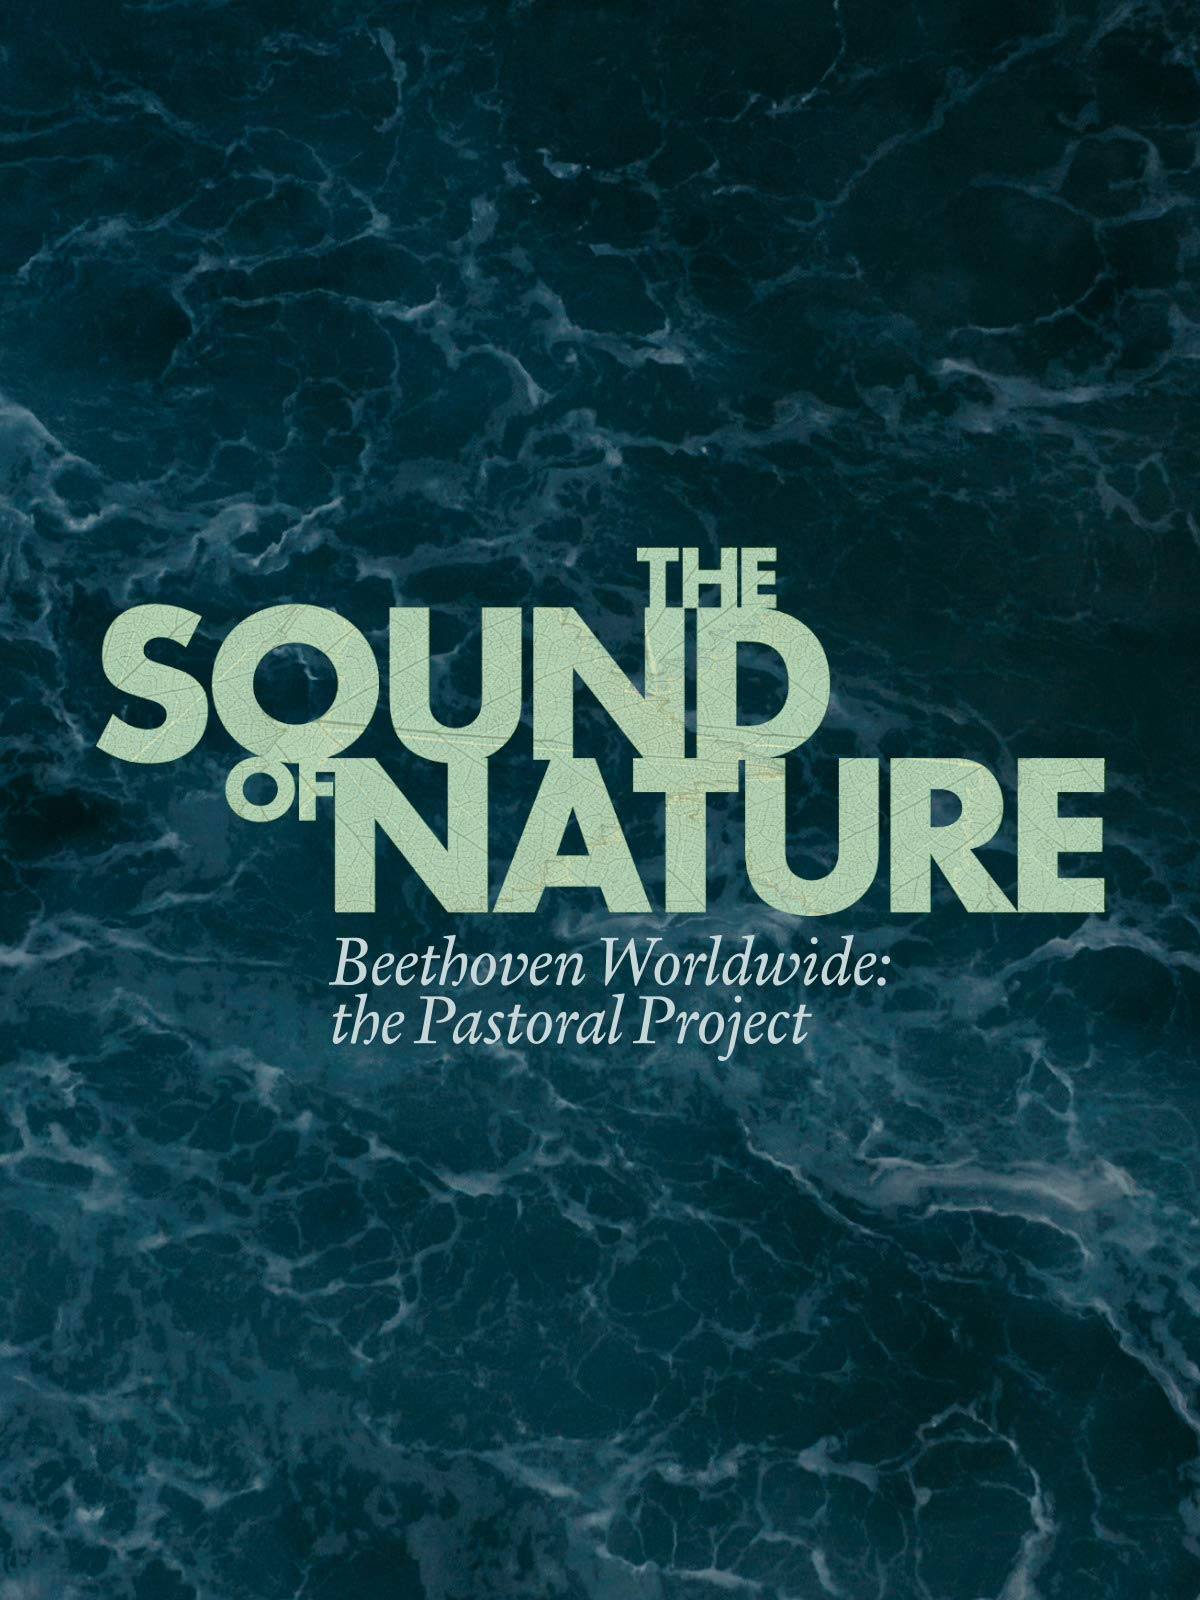 The Sound of Nature Beethoven Worldwide: the Pastoral Project